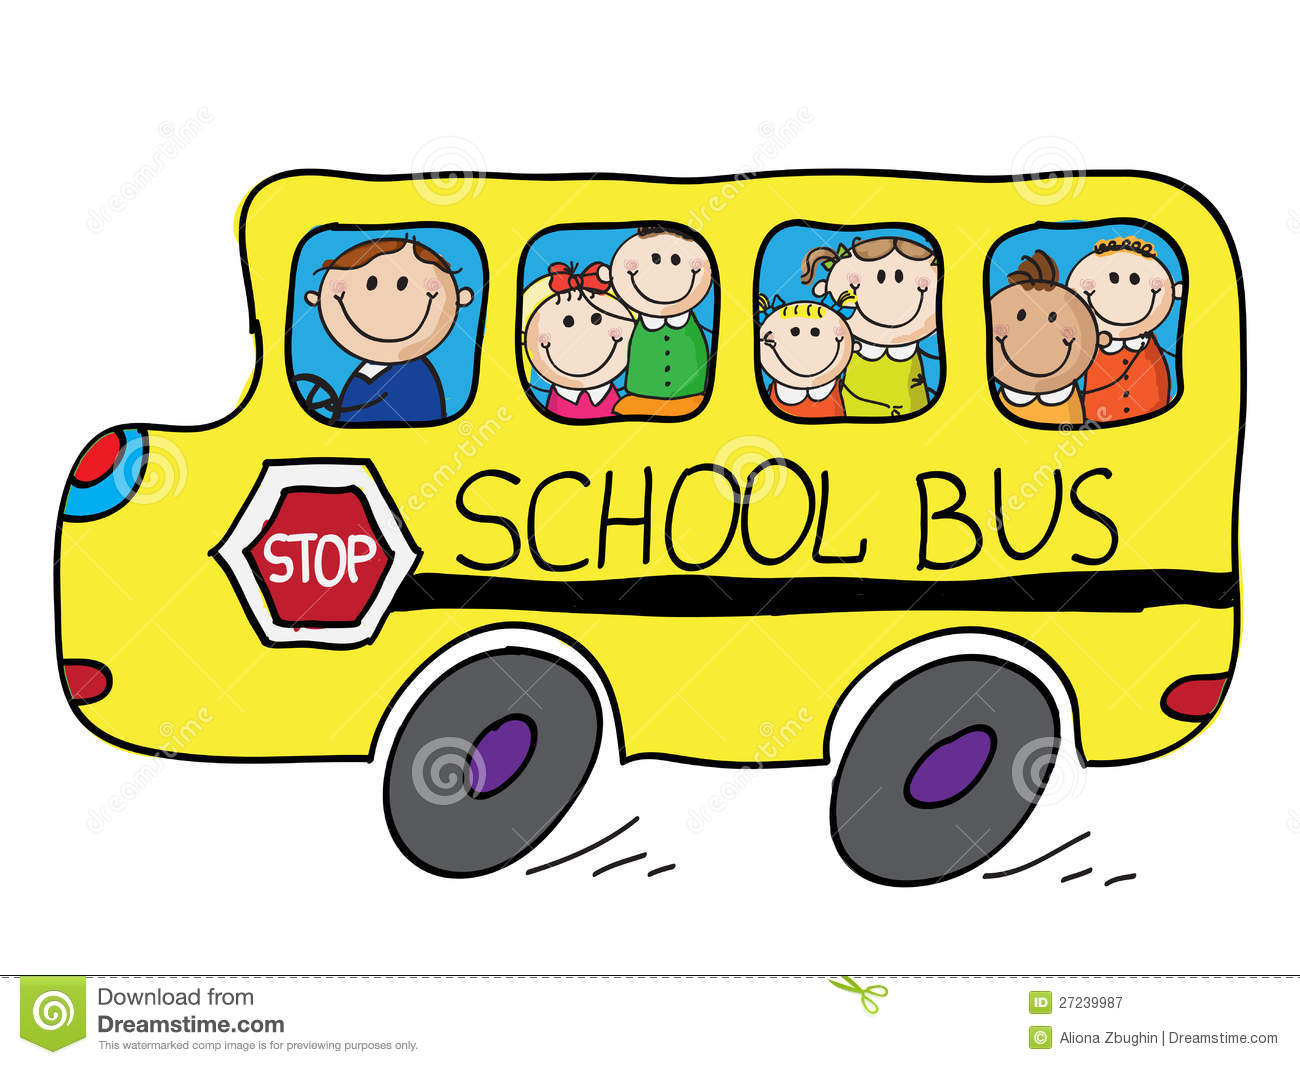 hight resolution of school bus royalty free stock school bus clipart free